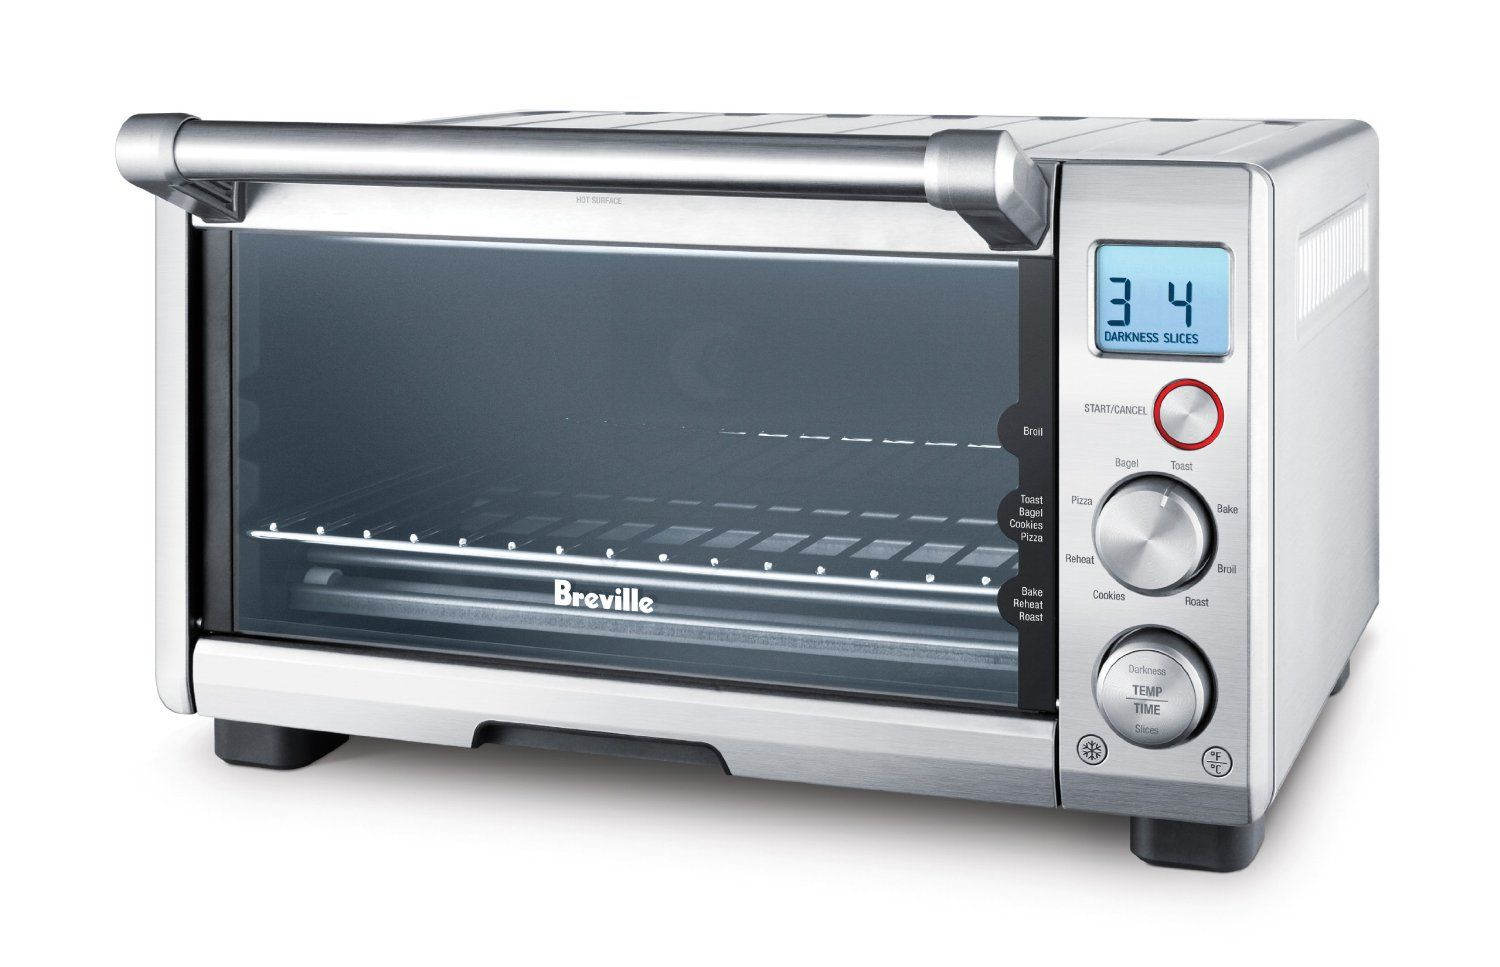 Breville Bov650xl The Compact Smart Oven Stainless Steel Click Image For More Details Breville Toaster Oven Smart Oven Breville Toaster